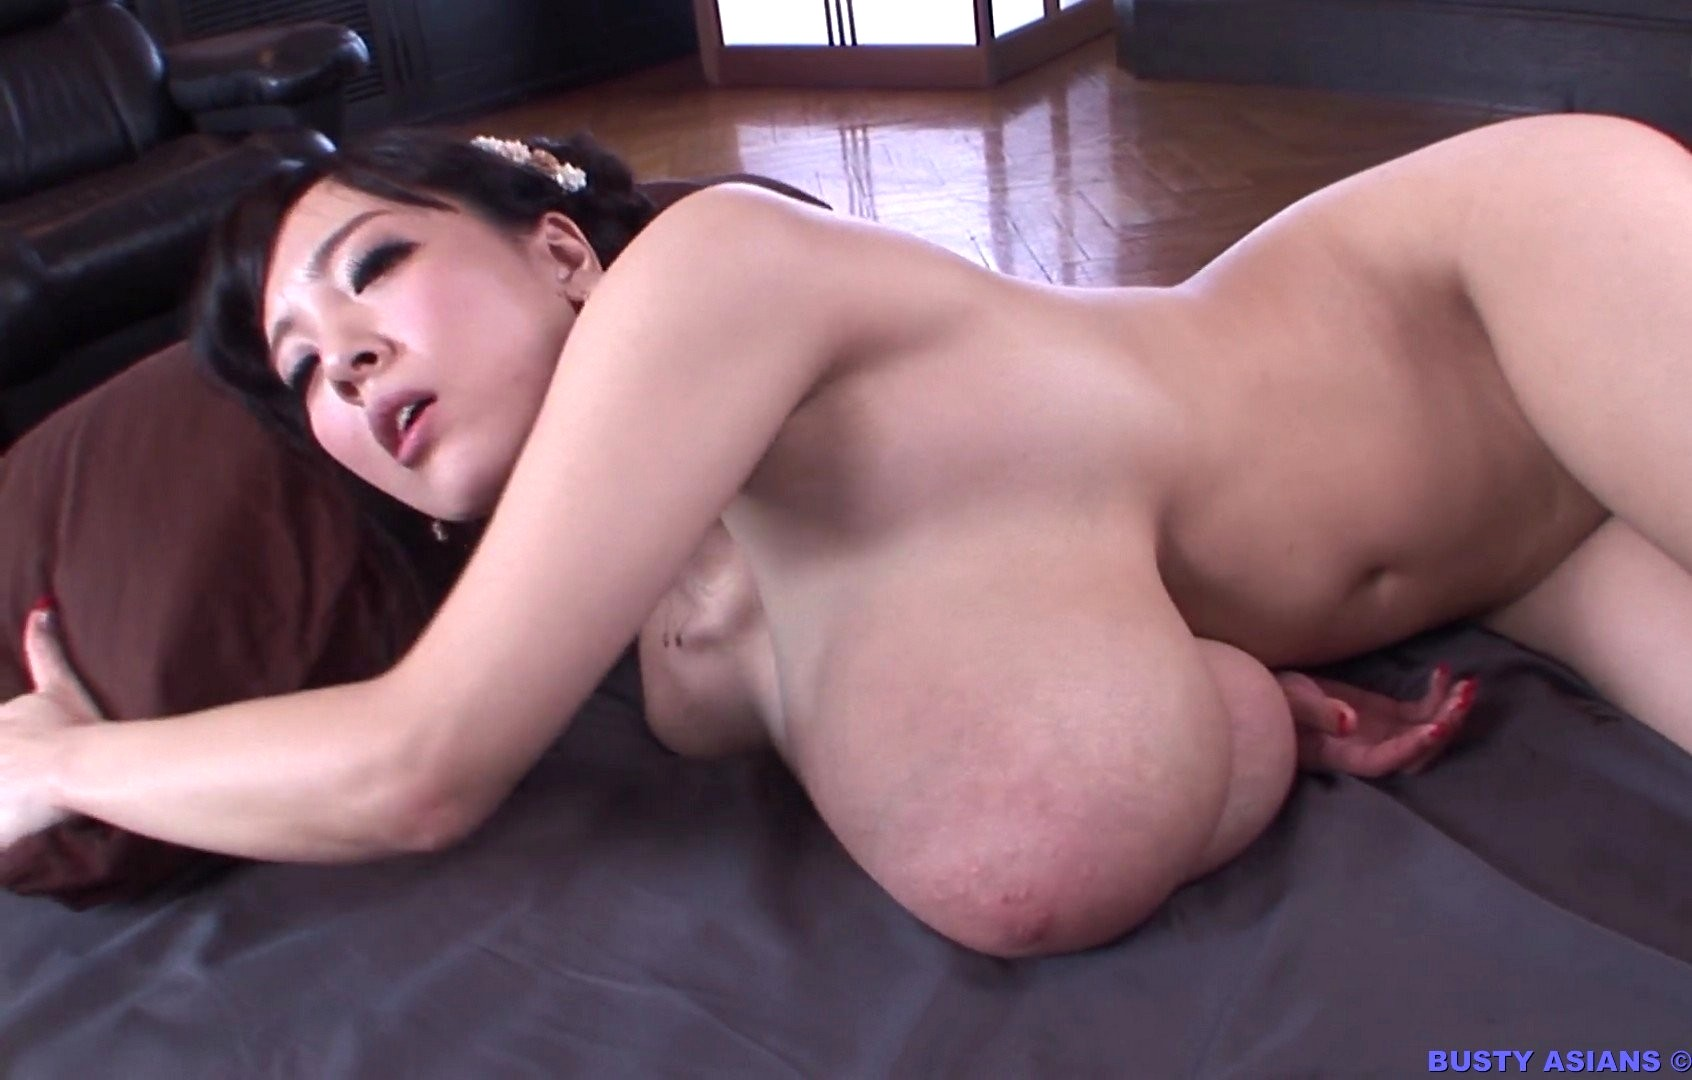 Free video porn of busty asians, utube black tits